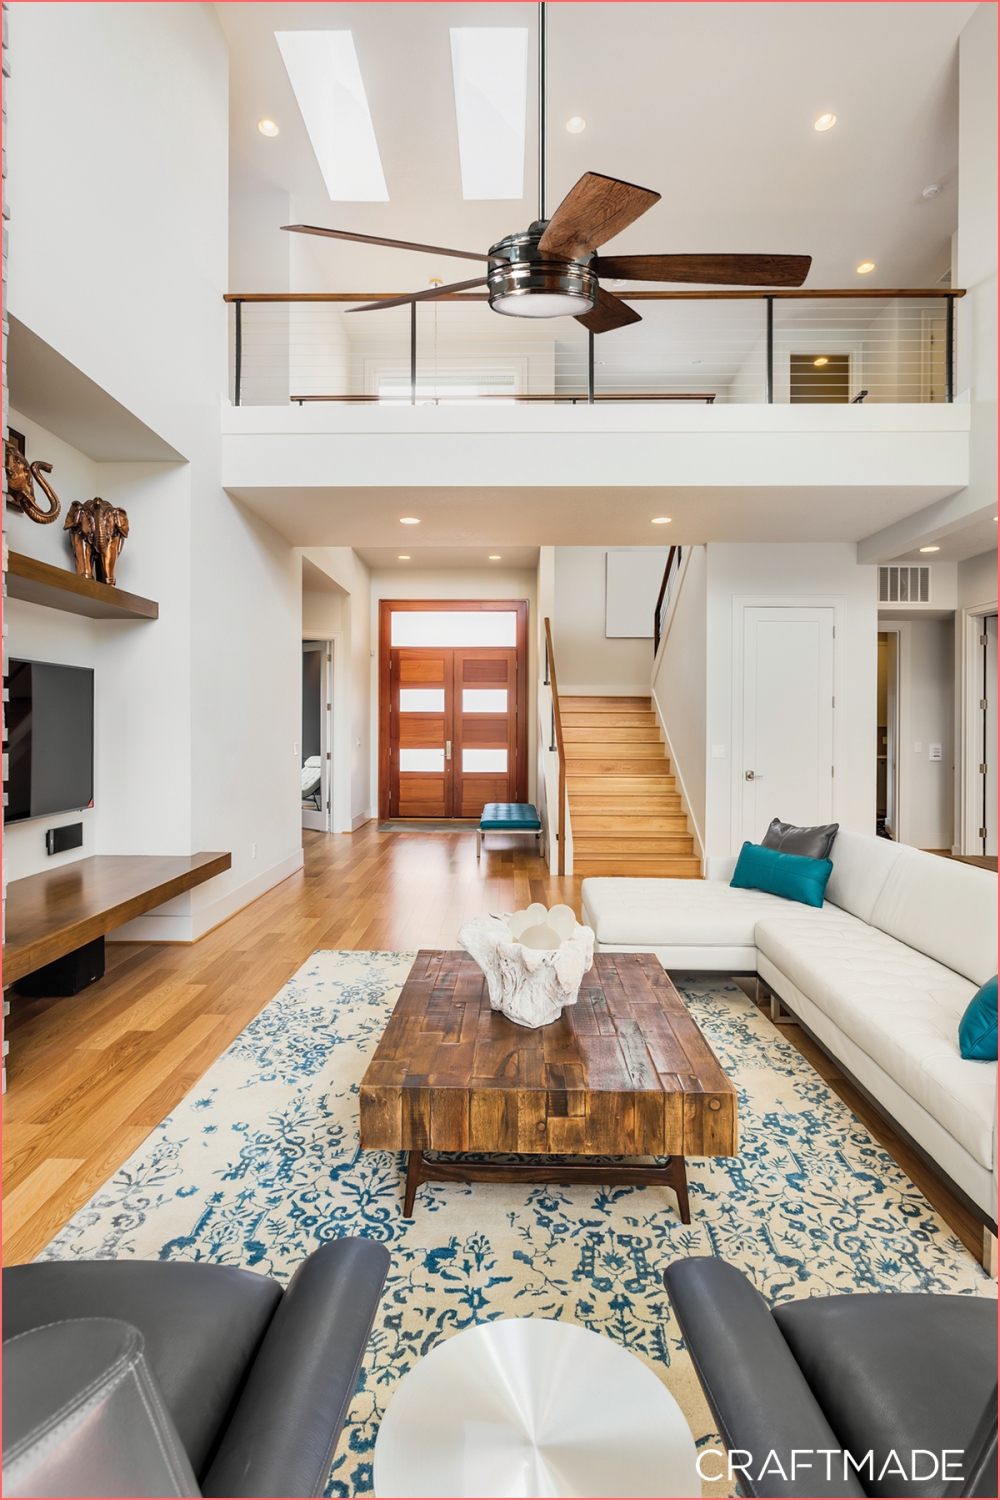 The Braxton by Craftmade s 5 blade fan beautifully on minimalist high ceiling living room design on minimalist high ceiling living room design post on 2020-11-21 16:13:05